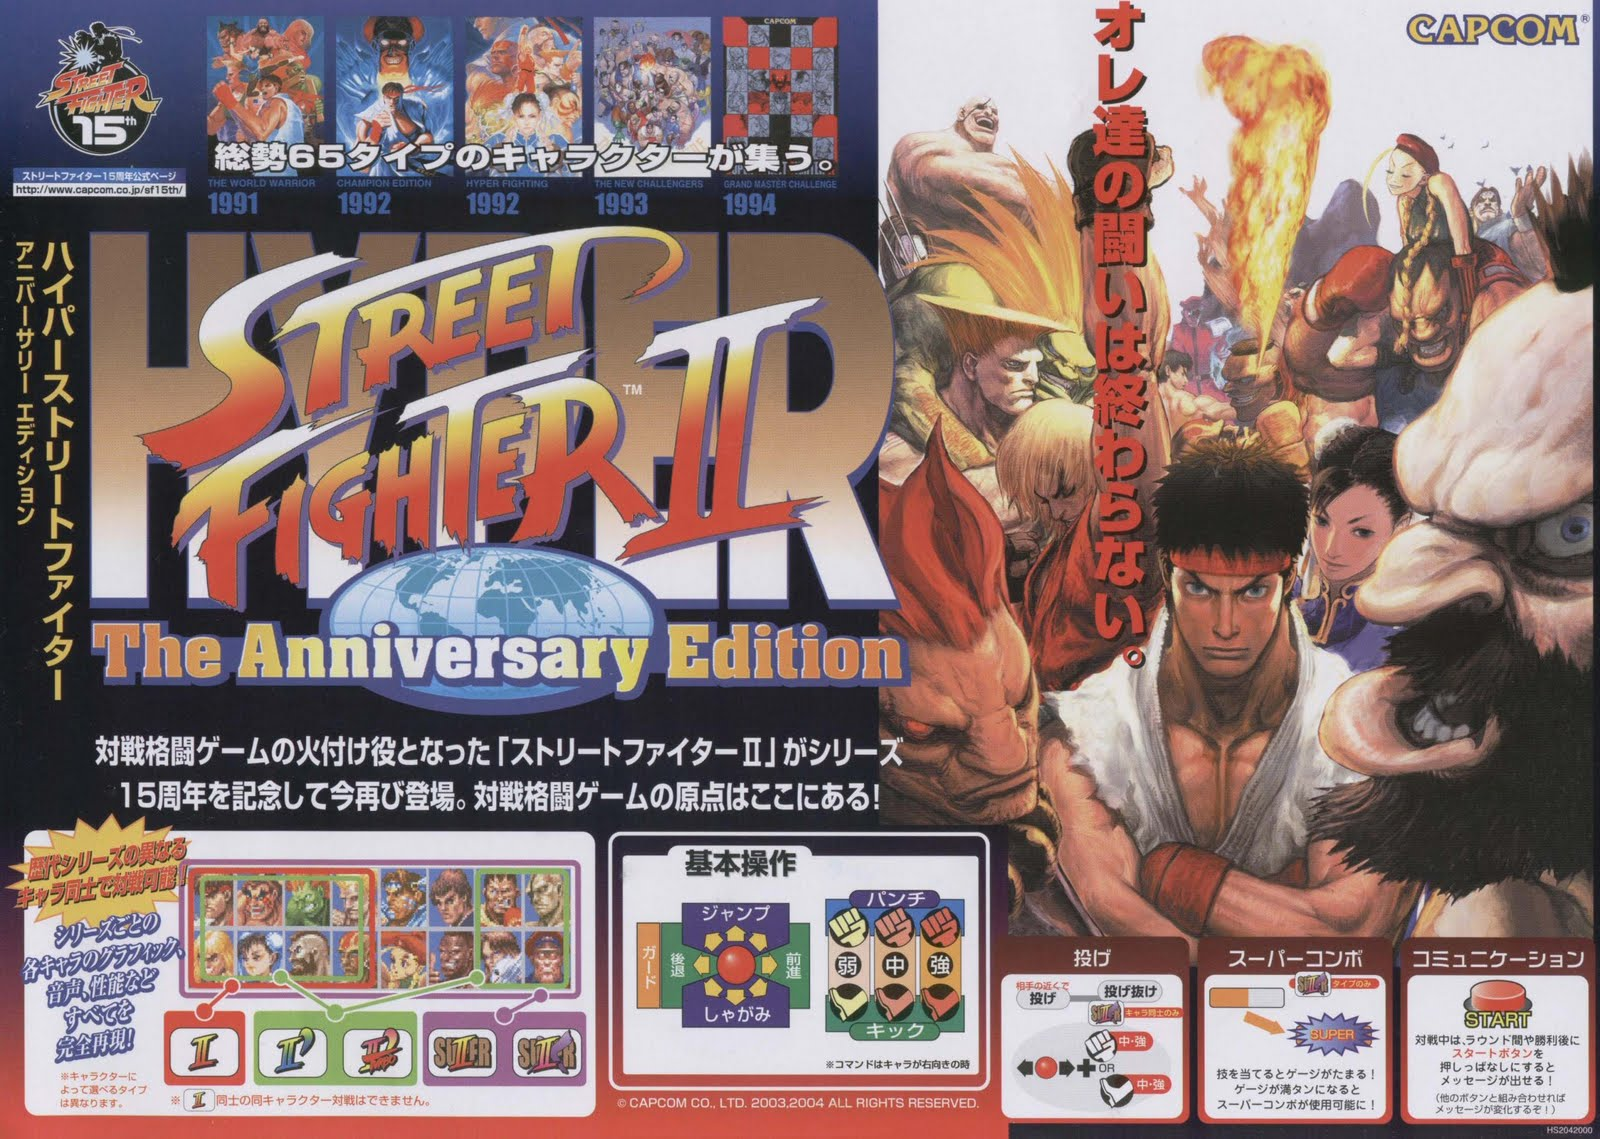 Hyper Street Fighter Ii The Anniversary Edition Usa 040202 Rom